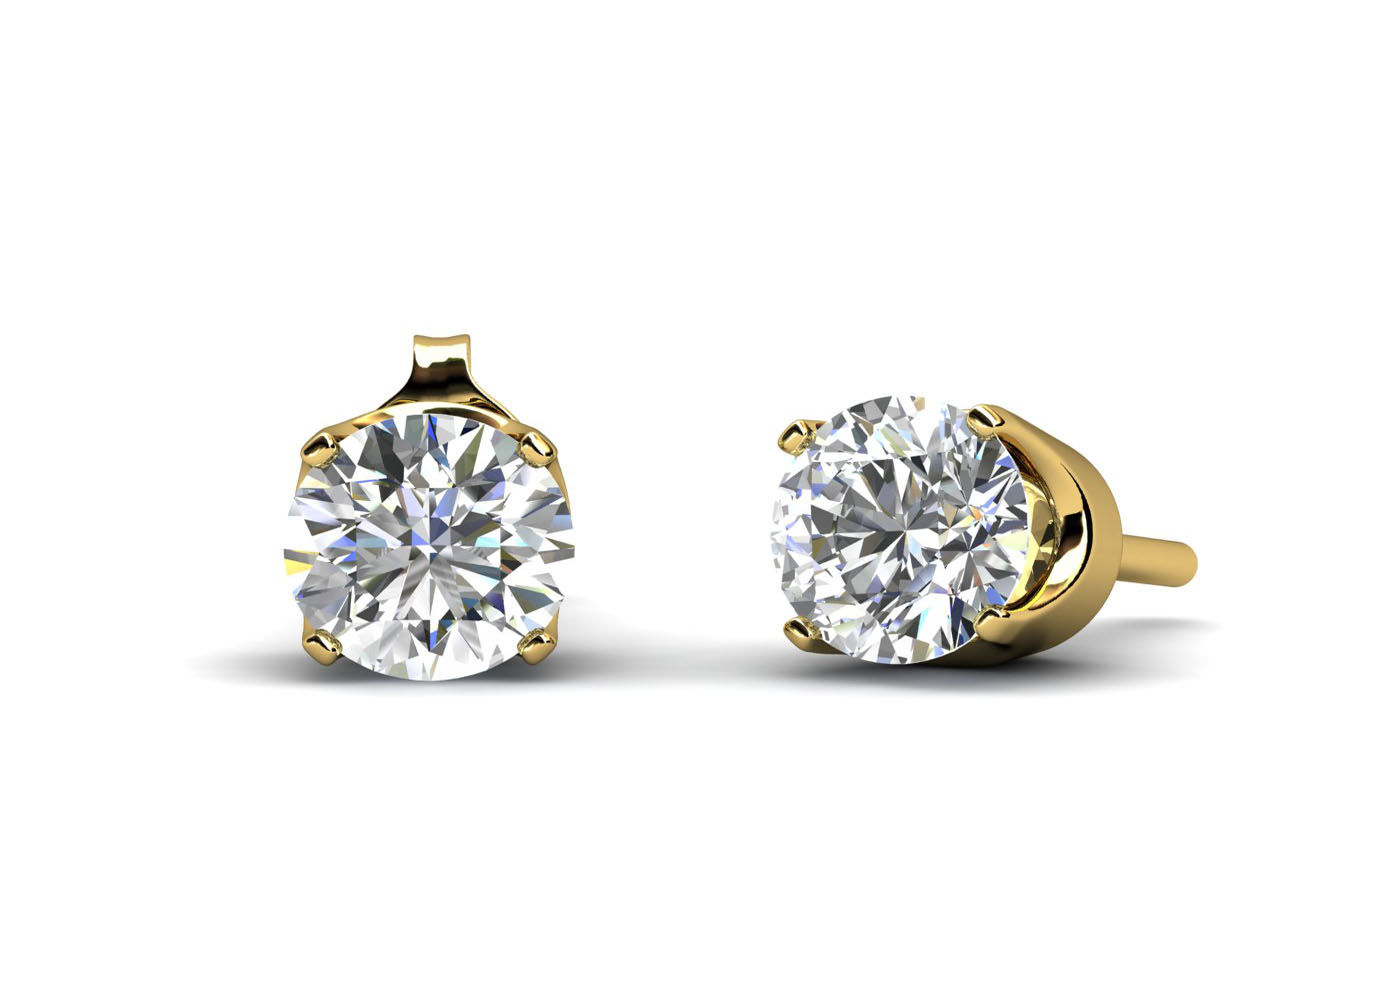 9ct Claw Set Diamond Earrings 0.40 Carats - Image 2 of 9